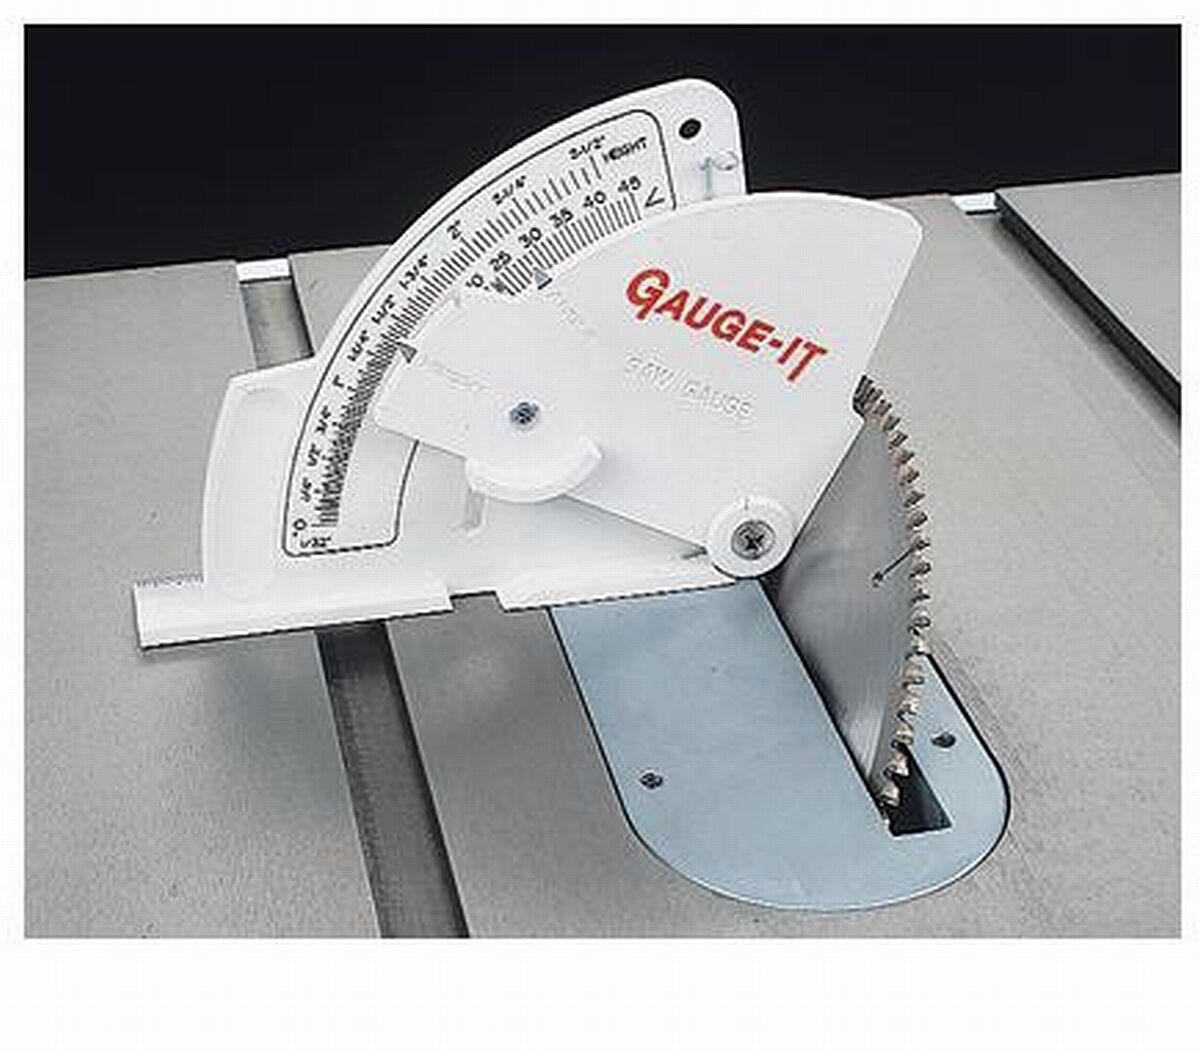 Gauge-it Table Saw Blade Height, Angle & Fence Gauge 4 Delta Grizzly Craftsman +